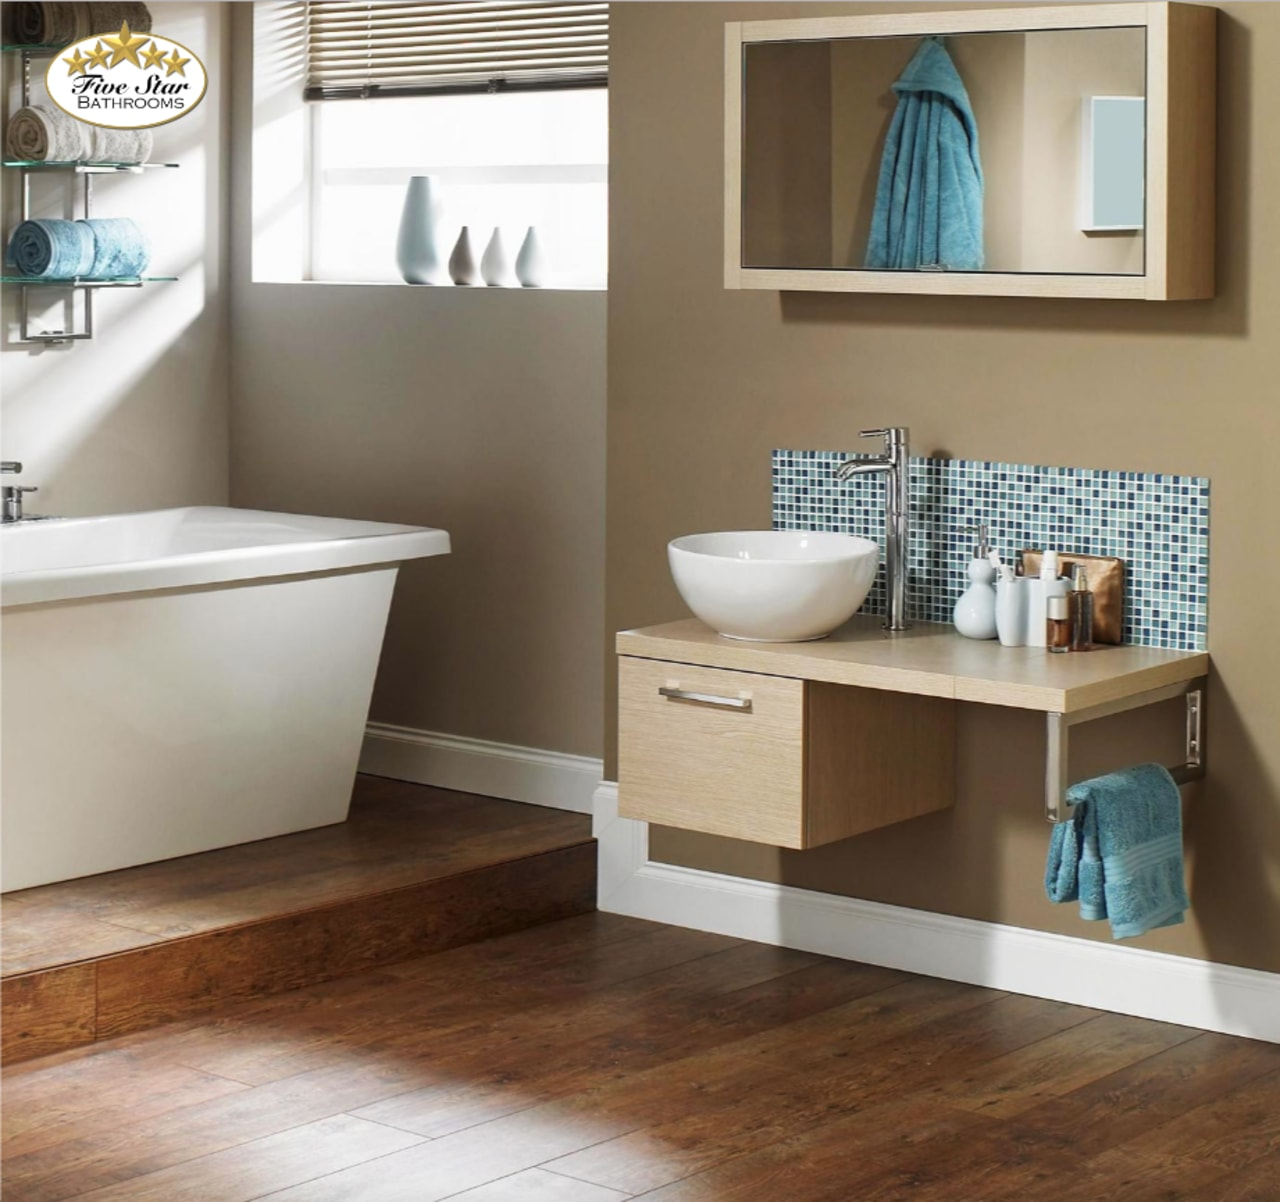 Bathroom by Five Star Bathrooms bathroom, bathroom accessory, bathroom cabinet, floor, flooring, hardwood, plumbing fixture, shelf, sink, brown, white